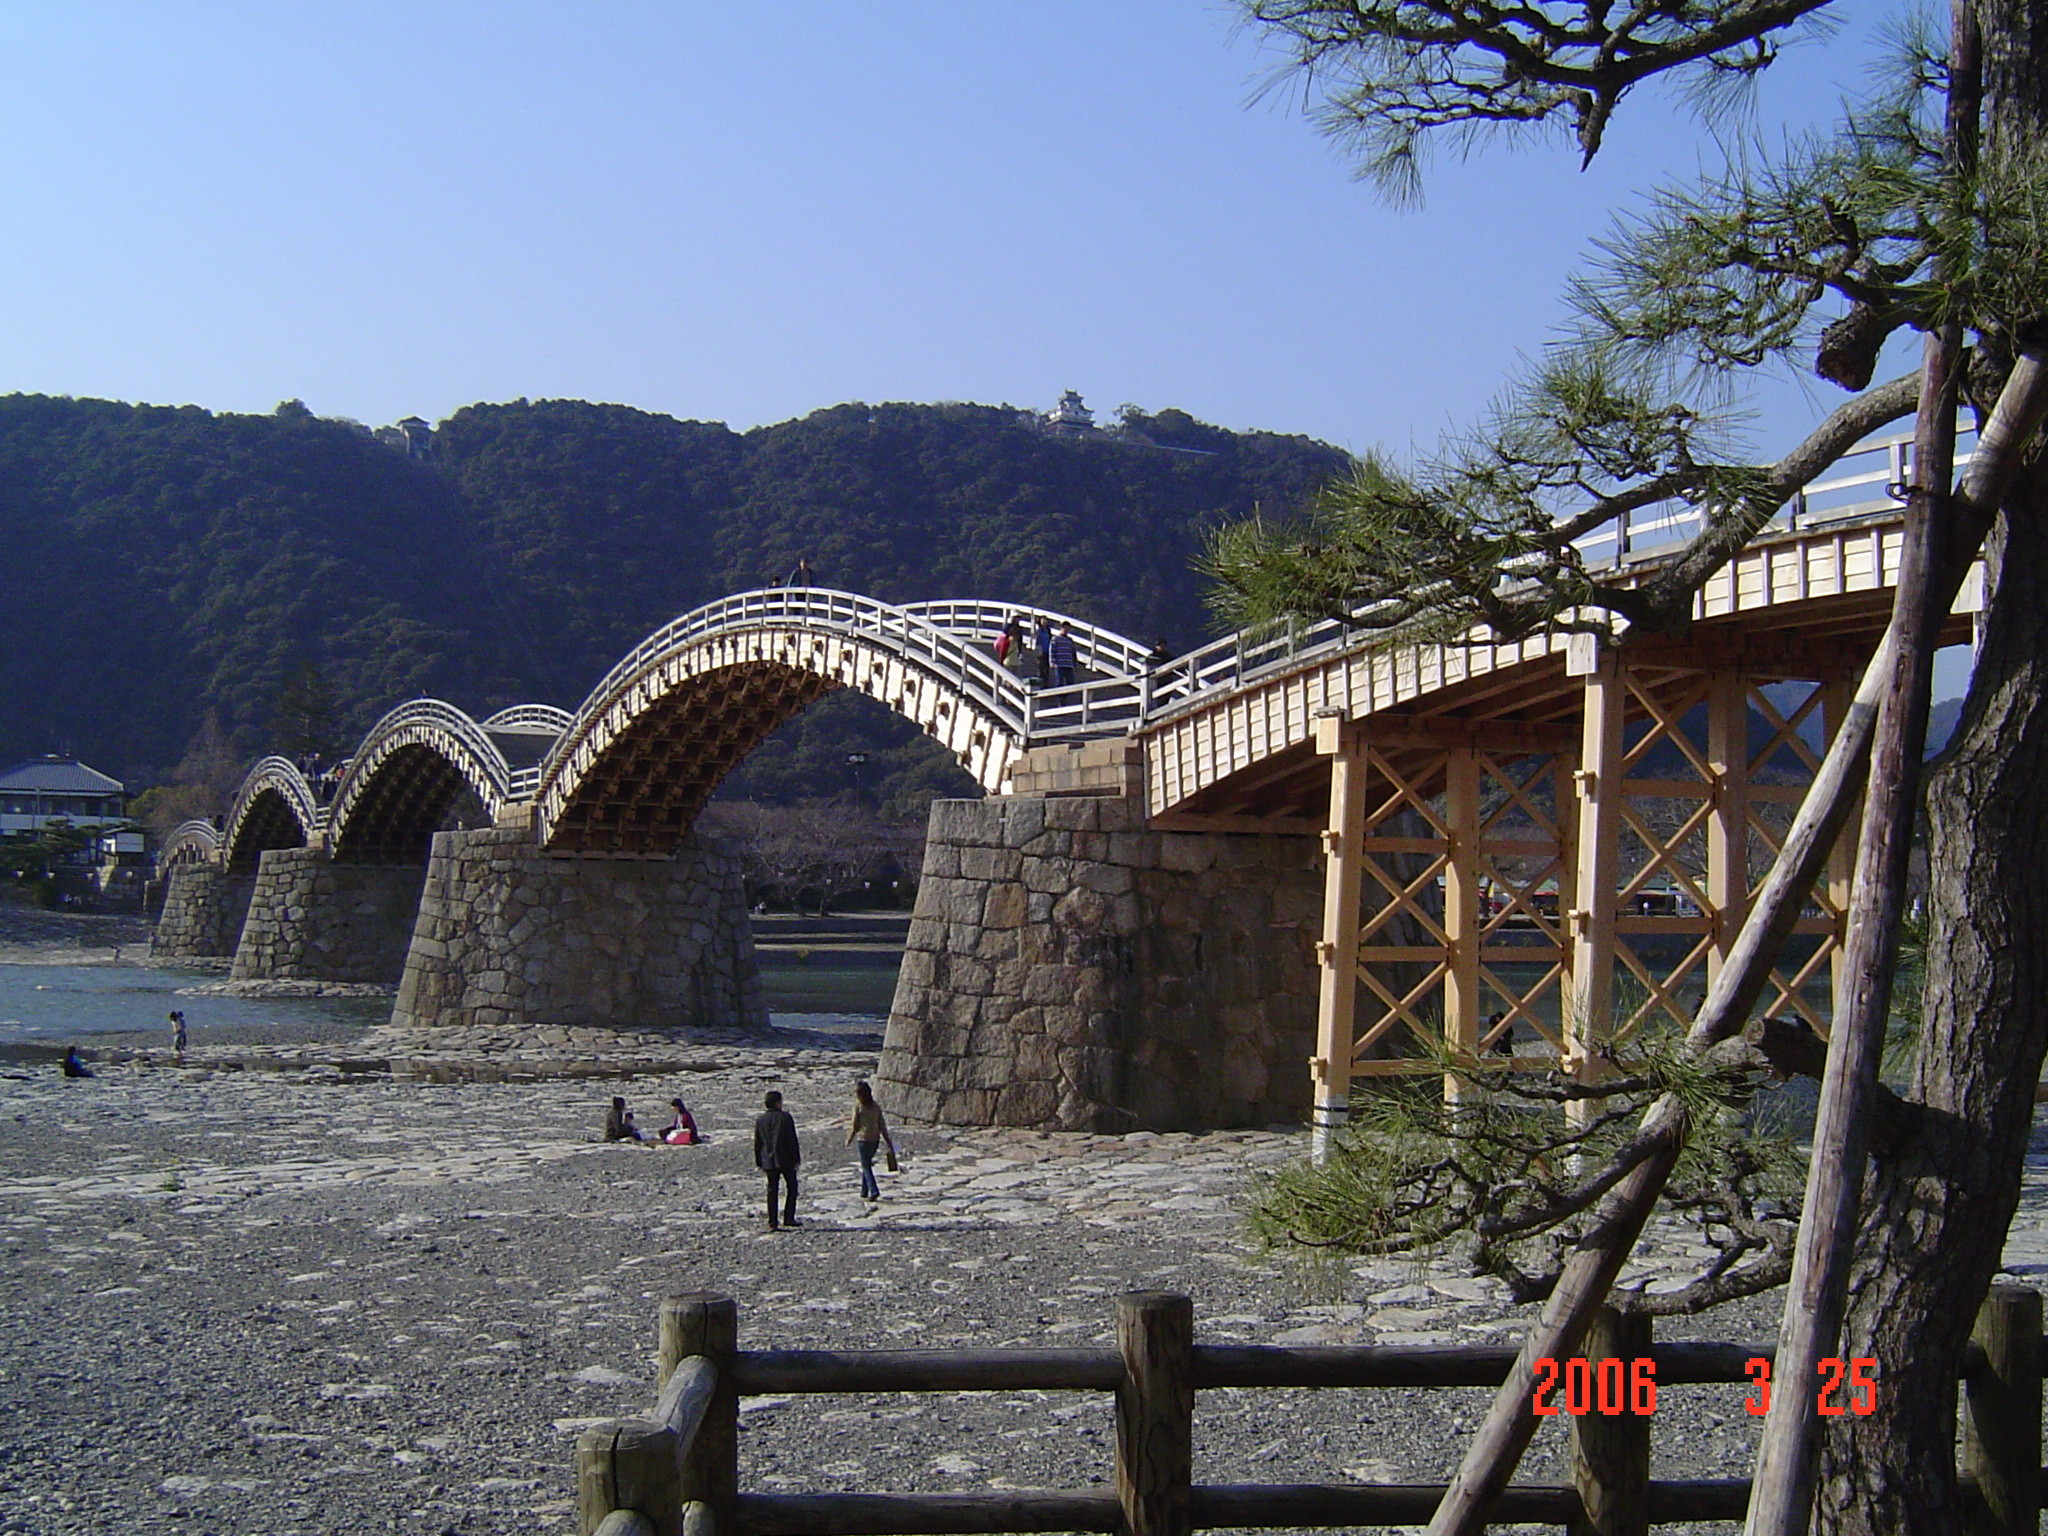 Kintaikyo bridge in 2006